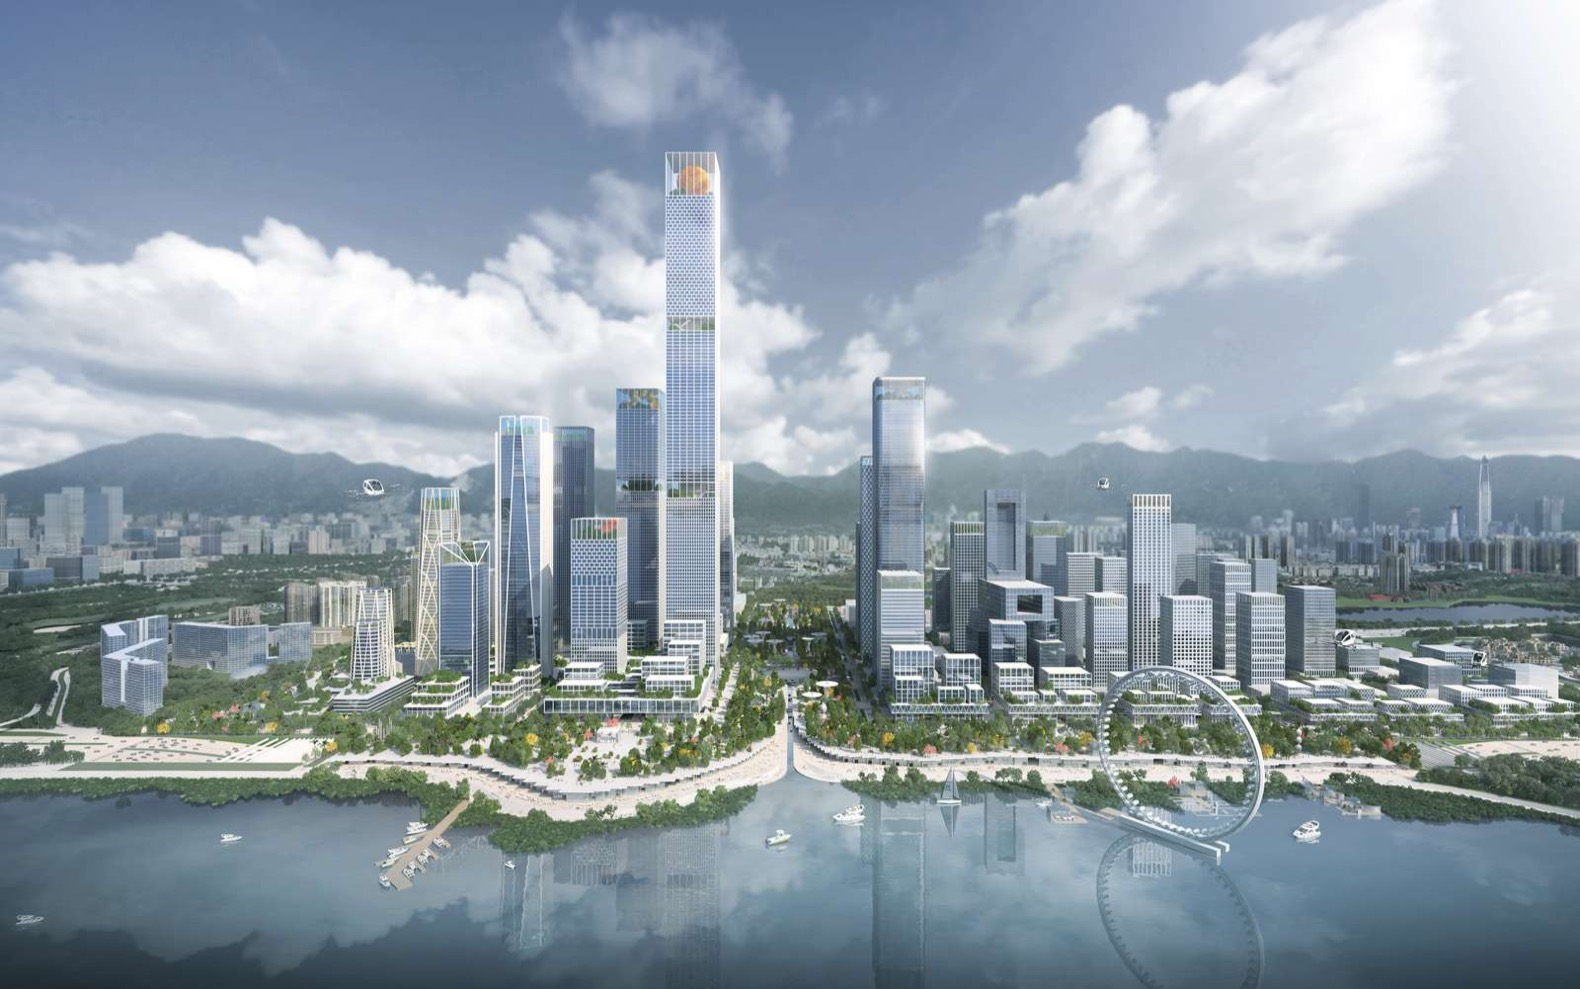 Henning Larsen wins bid to design a sustainable business district for Shenzhen